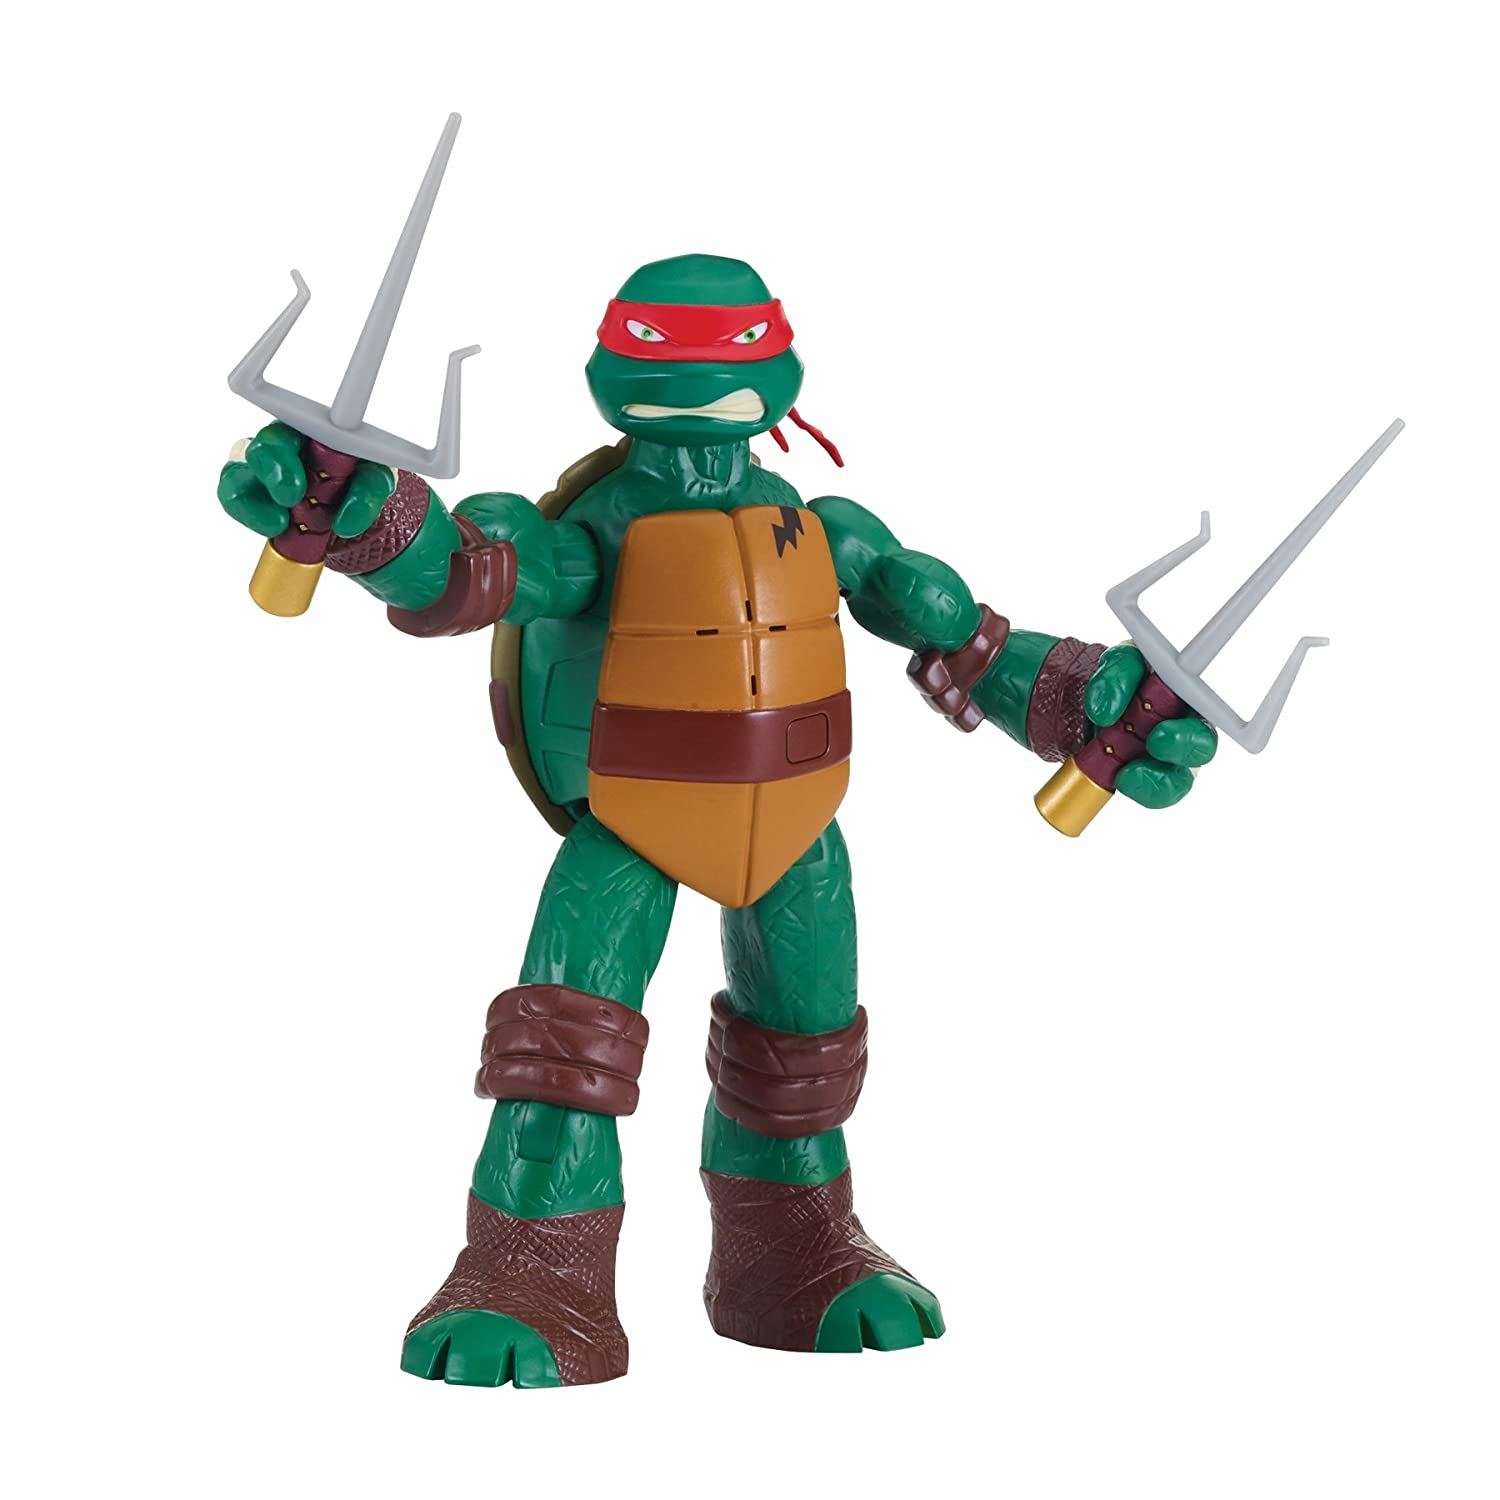 Teenage Mutant Ninja Turtles 91295 Action Figure Toy Playmates Toys